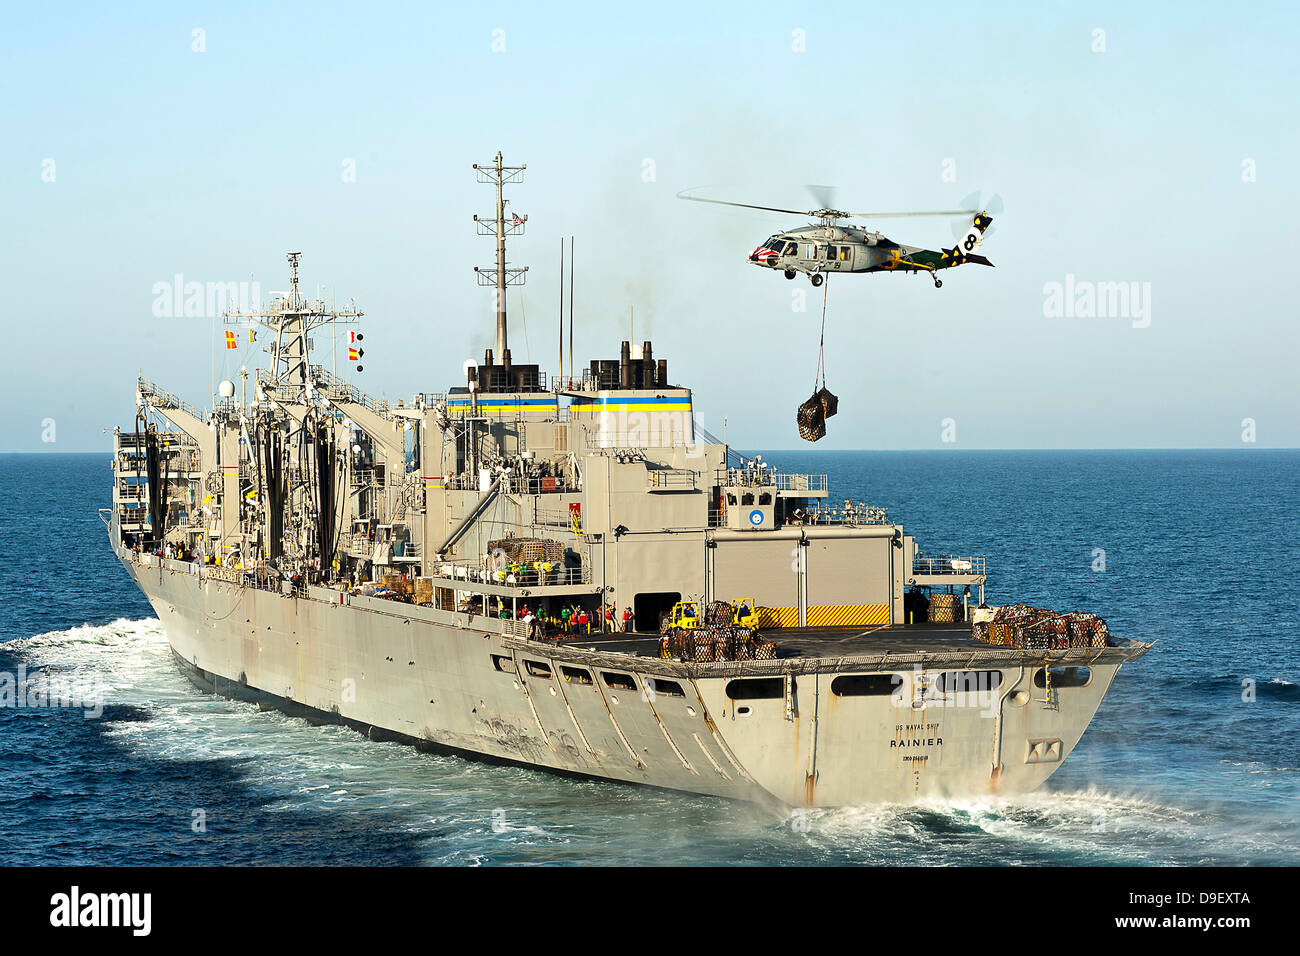 An MH-60S Knighthawk lifts cargo from the fast combat support ship USNS Rainier. - Stock Image